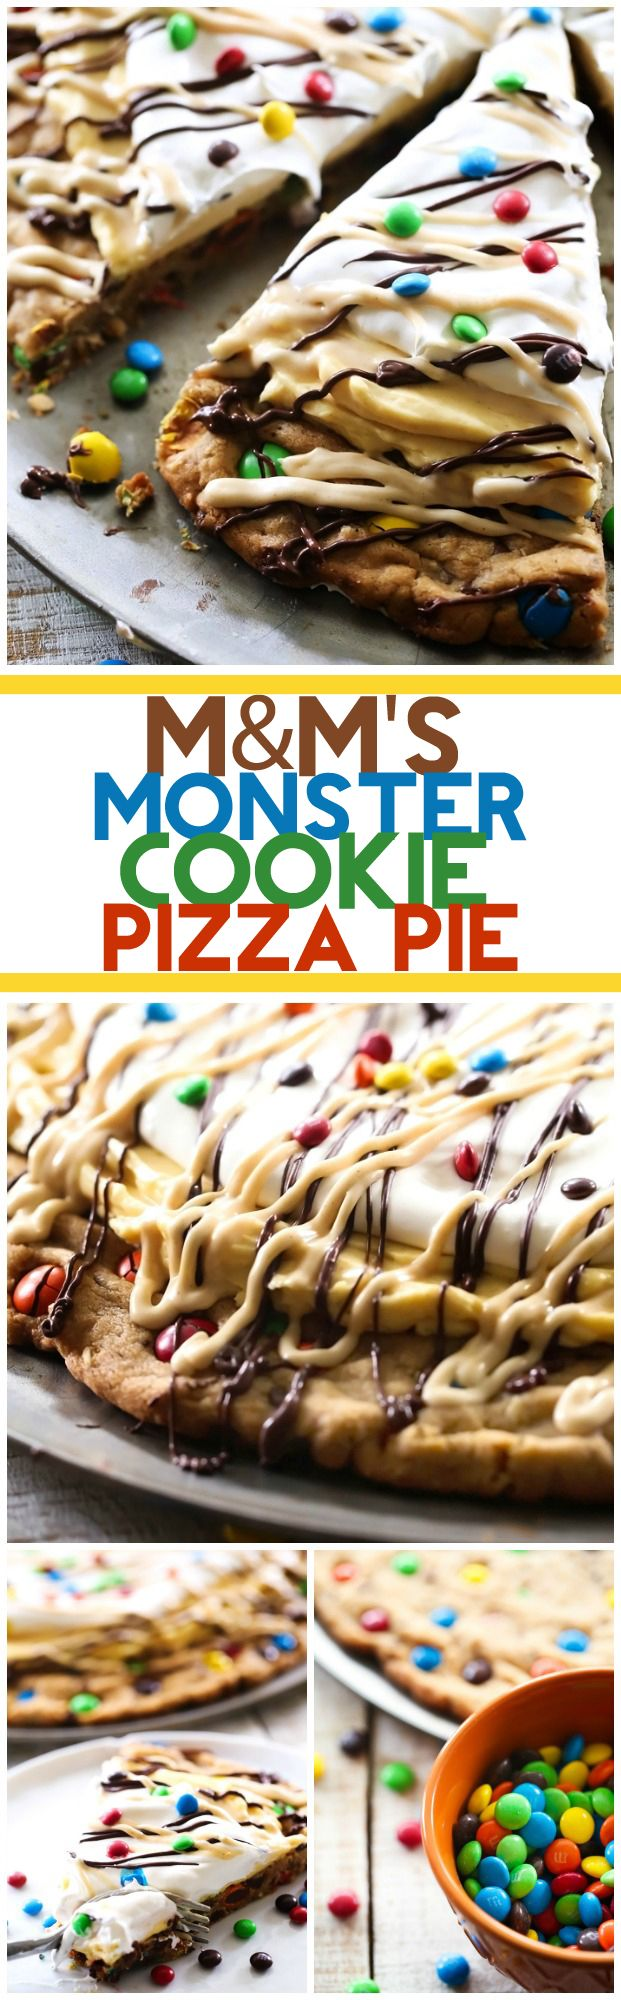 This M&M'S Monster Cookie Pizza Pie is the ultimate dessert! It is peanut butter chocolate heaven! #sponsored